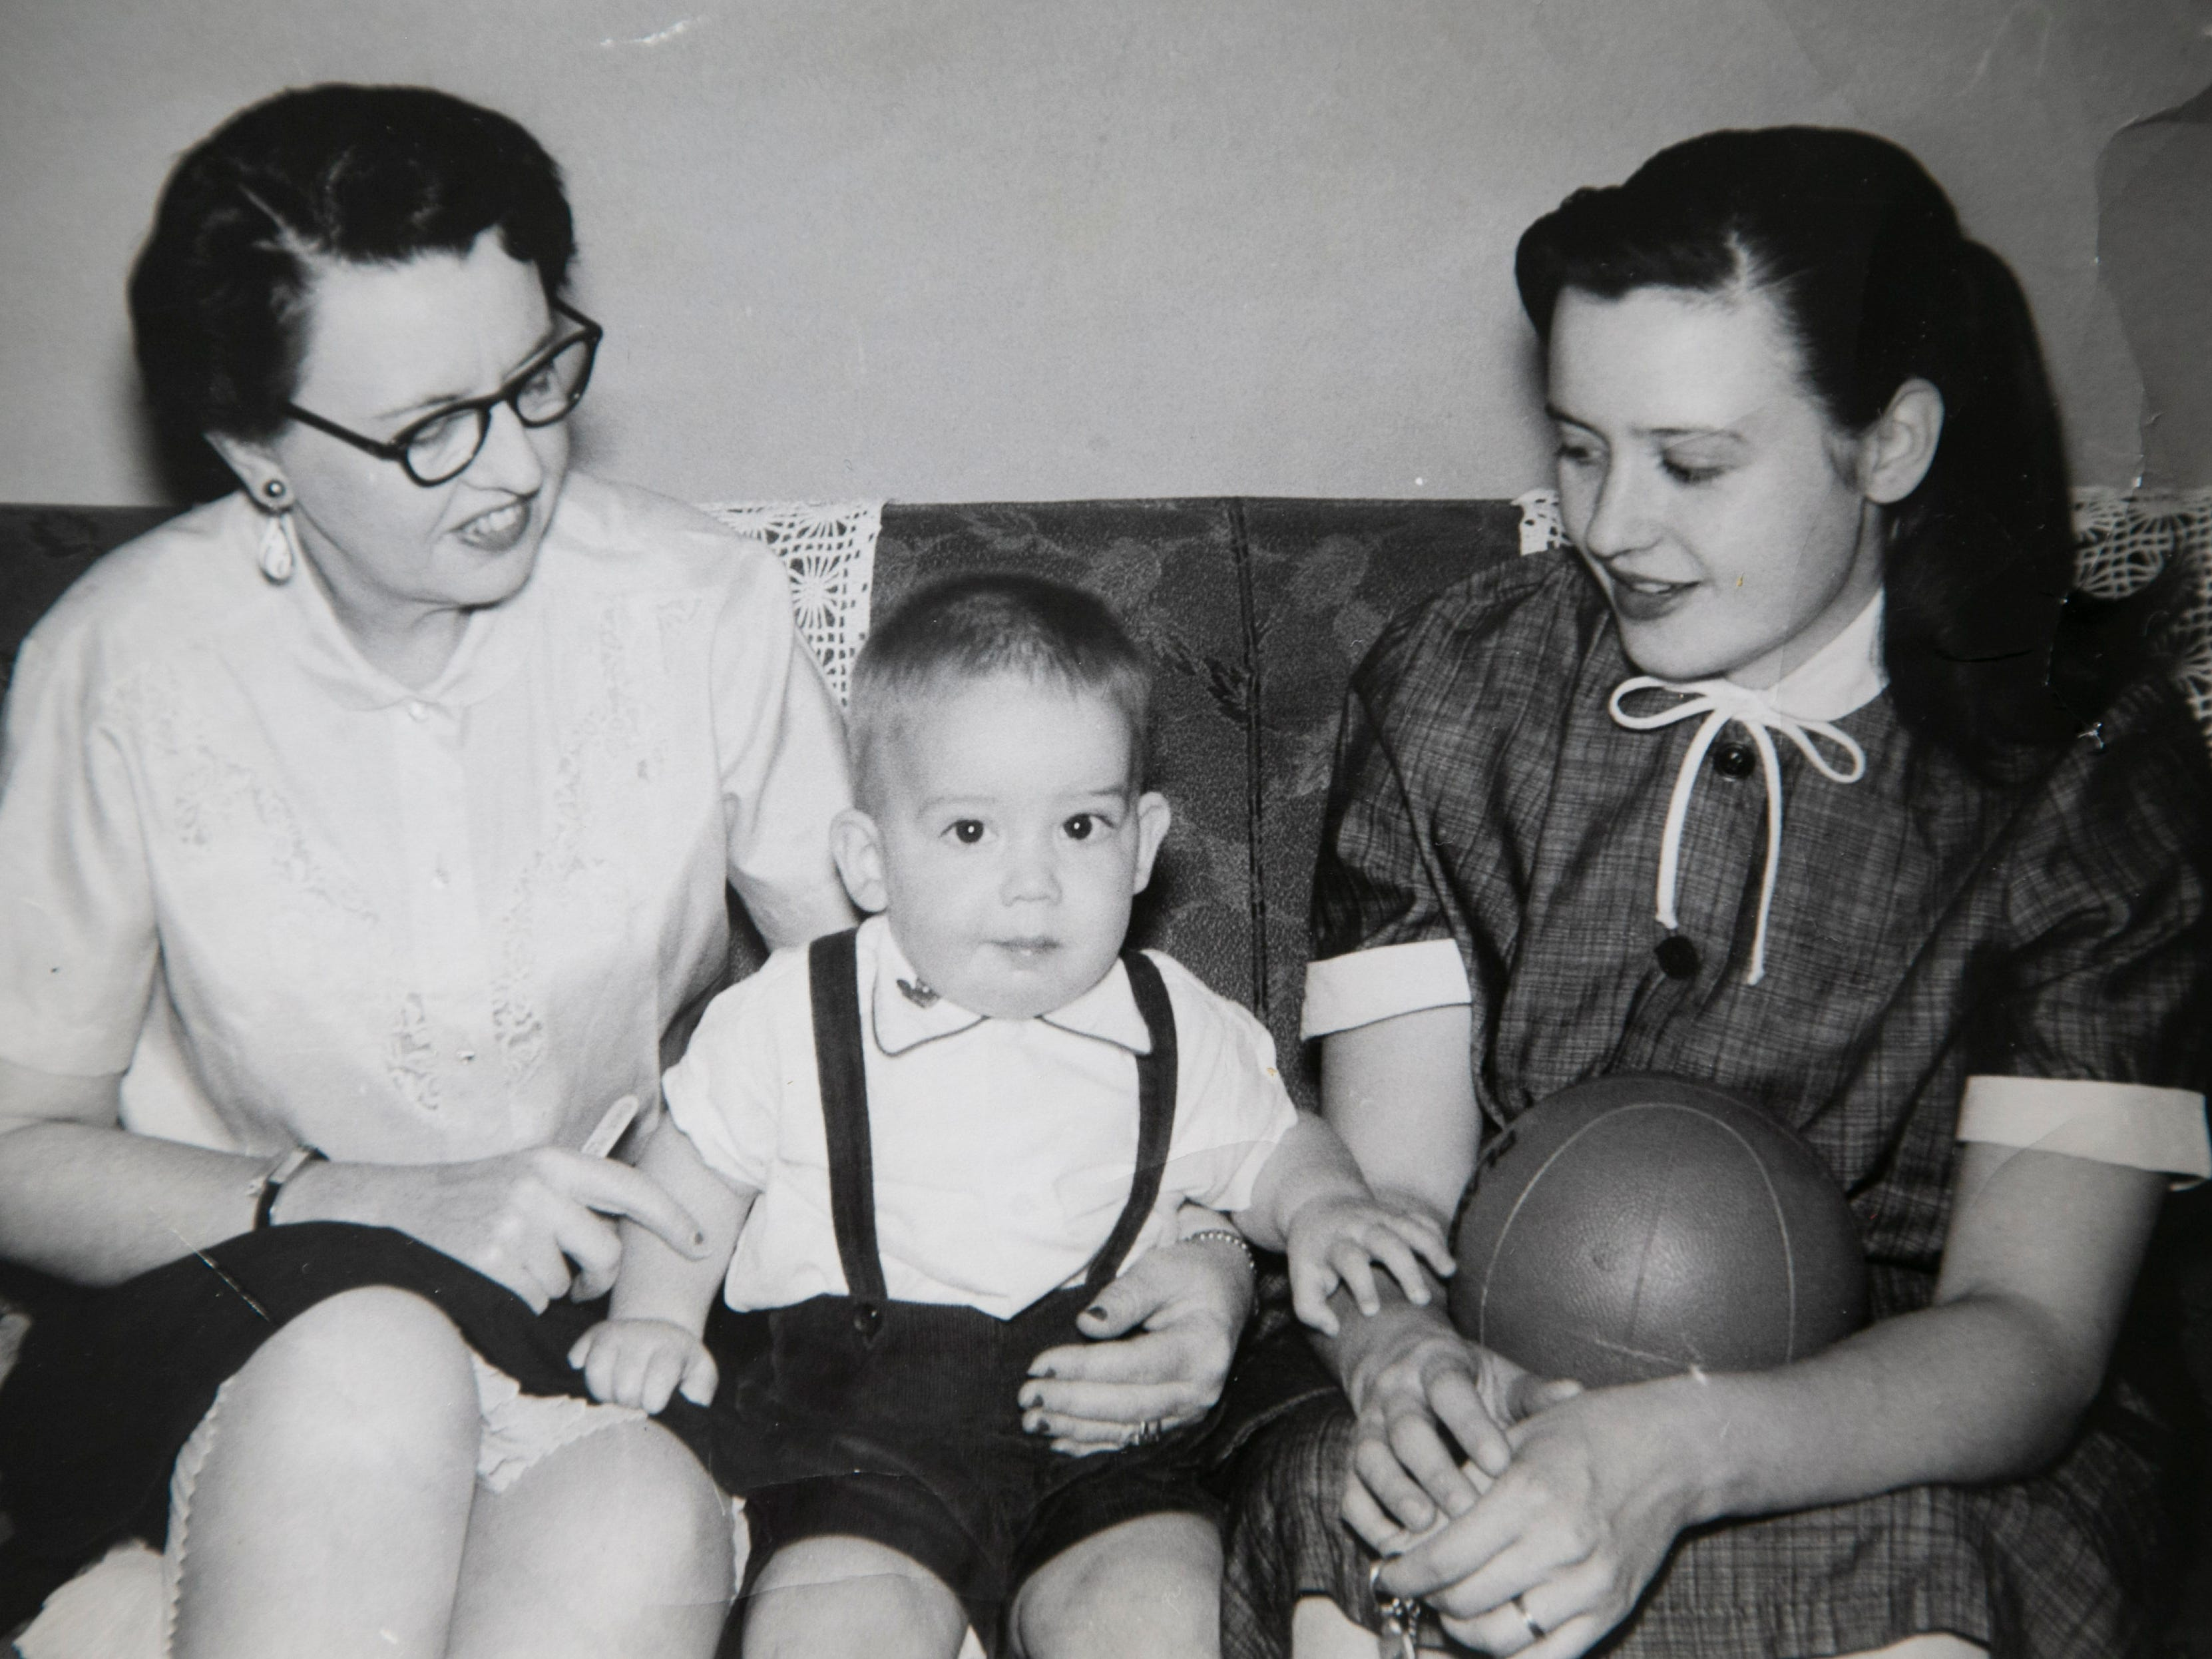 Michael Crow with his mother, Beverly (right), and grandmother Ruth in Des Moines, Iowa, in 1956.